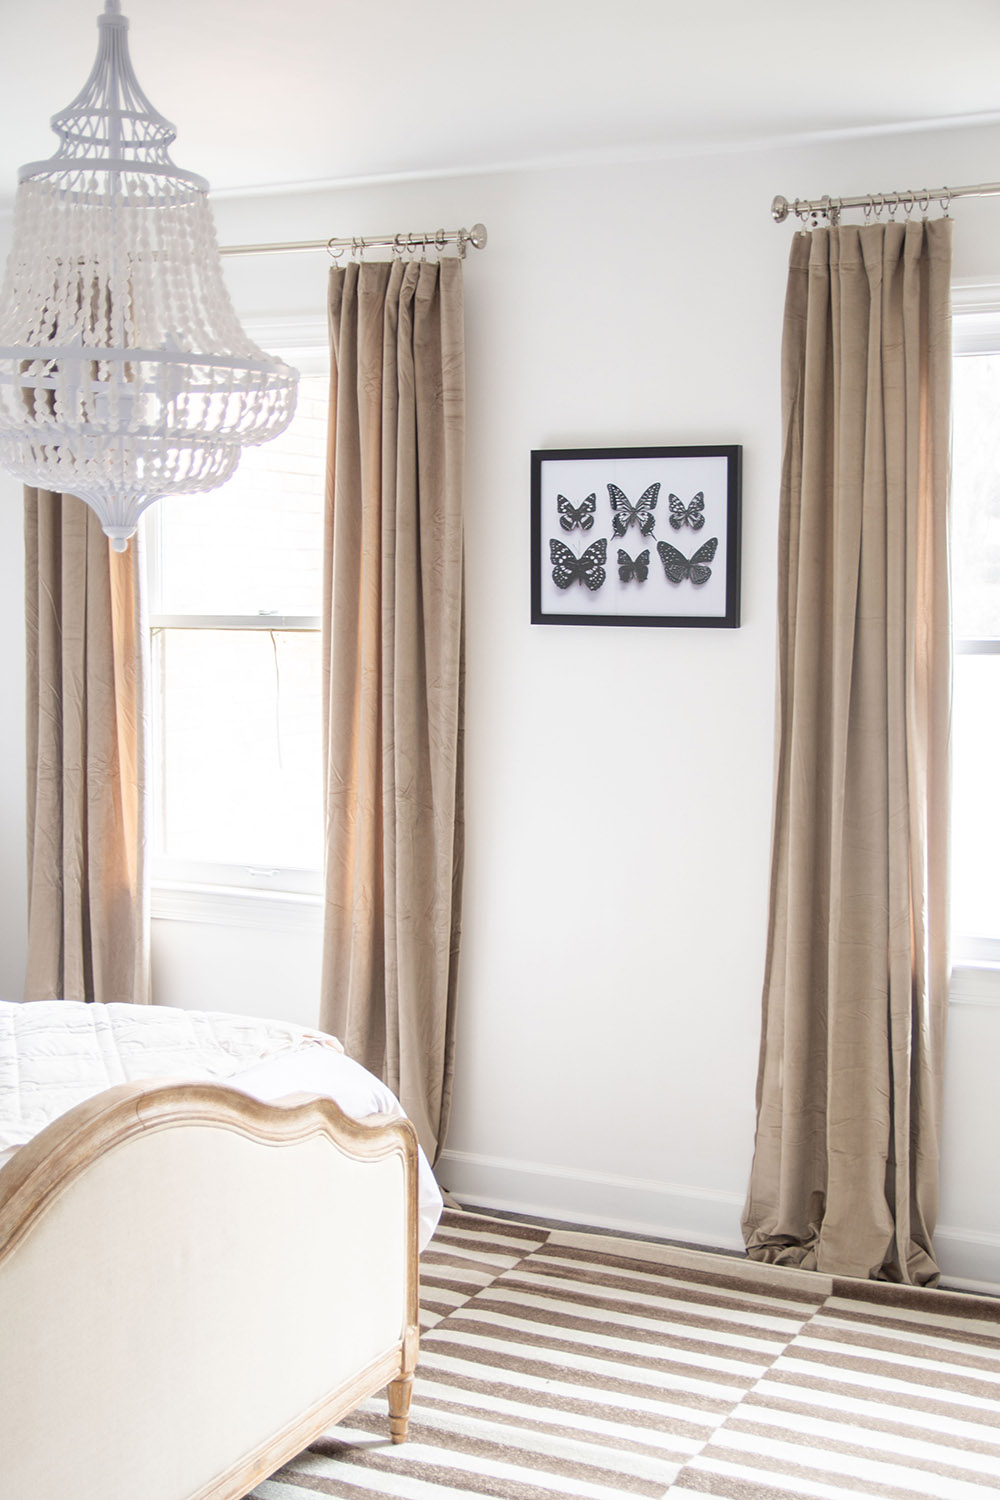 A bedroom scene featuring a modern light fixture overhead, neutral colored curtains and wall art.